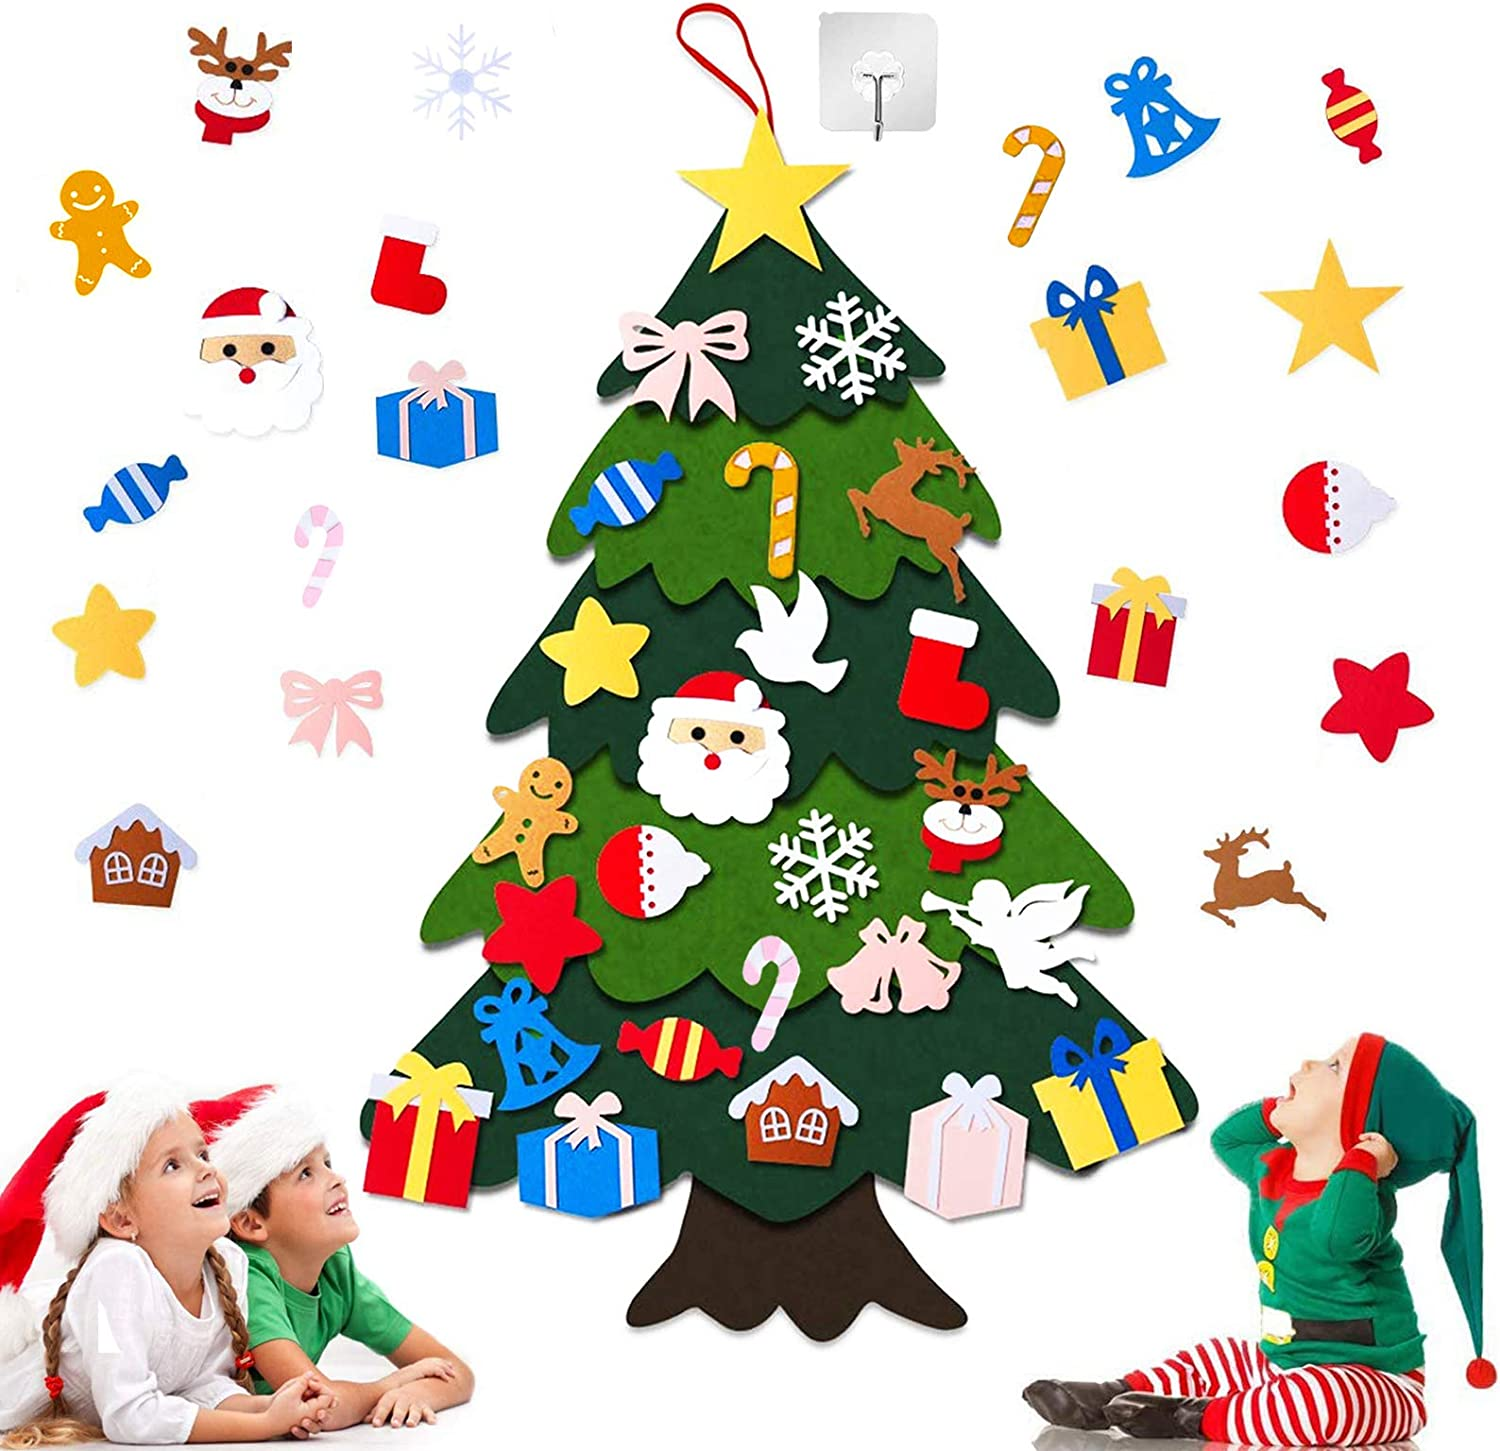 DIY Kids Felt Christmas Tree - 40'' x 30'', 26pcs Lovely Detachable Ornaments, Multilayered Xmas Hanging Decorations Tree for Toddlers, for Home Wall Door Decor Gifts, with 1 Self Adhesive Hook